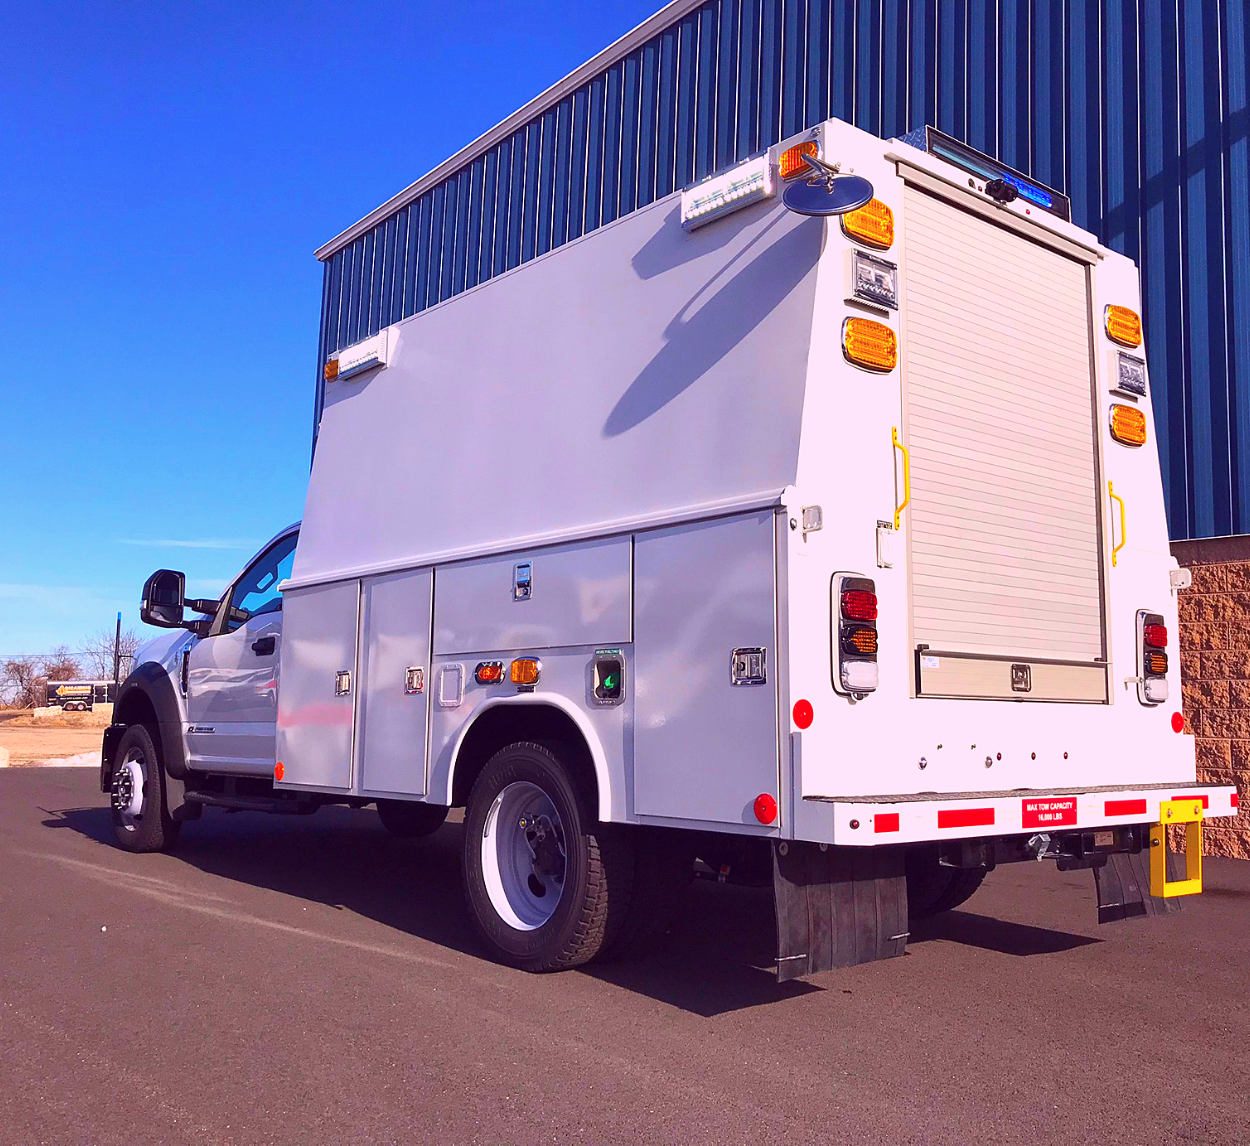 Copy of First Priority Emergency Vehicles Custom Utility Truck Specialty Vehicles